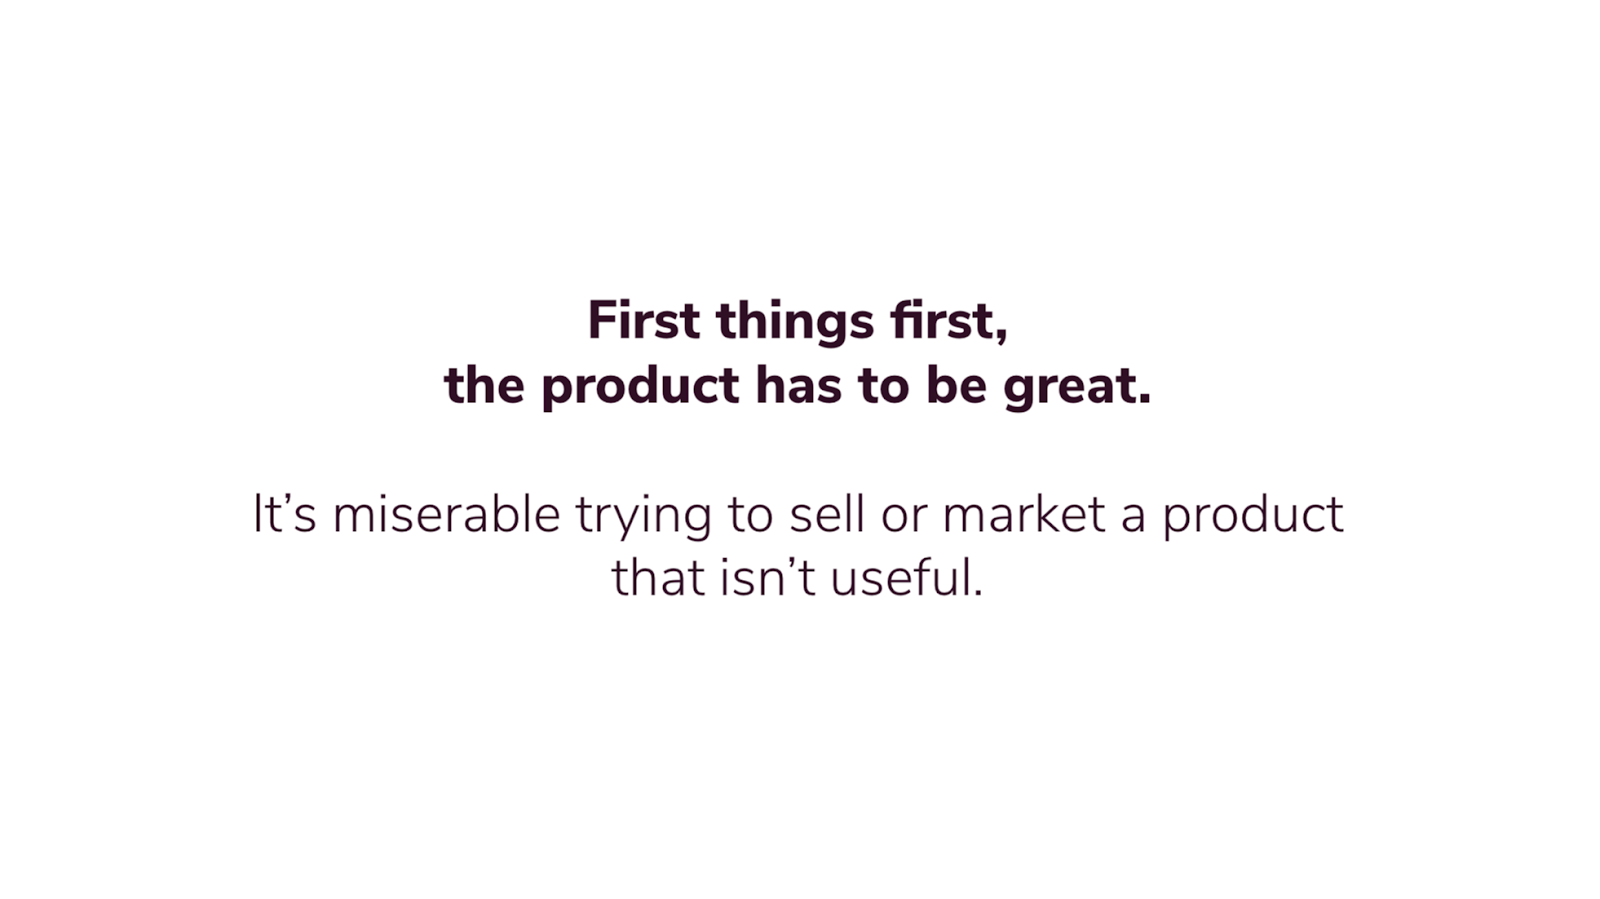 Go-to-market - great products.